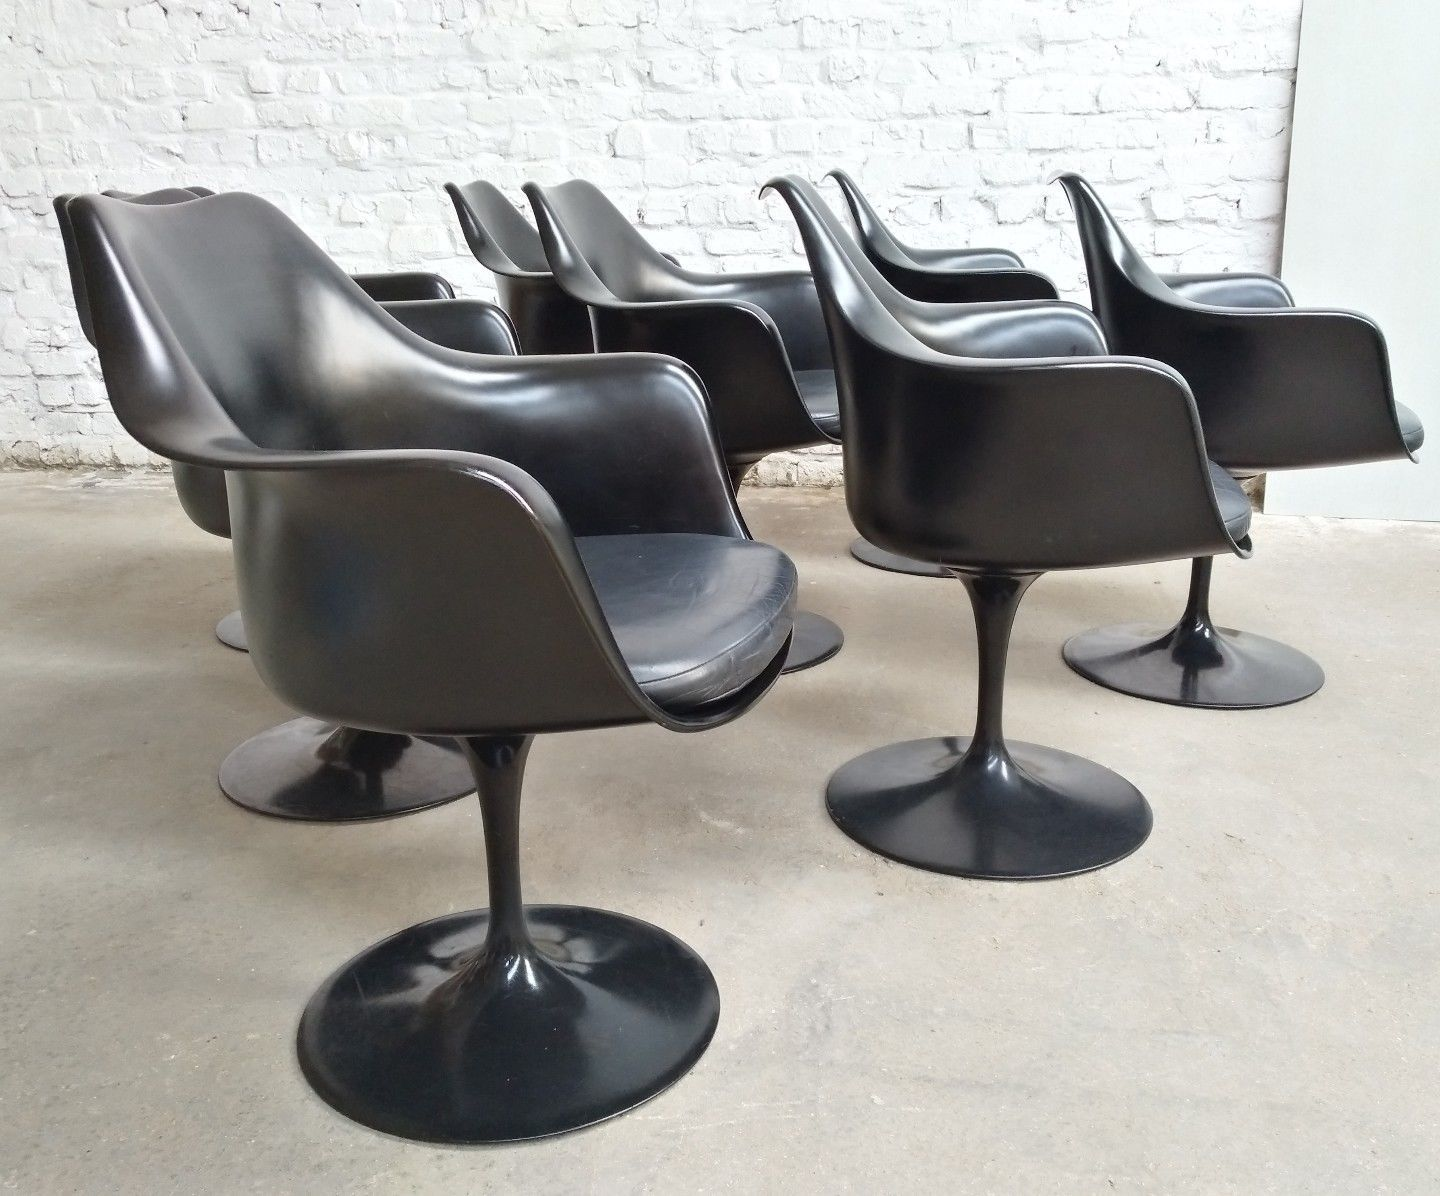 fauteuil pivotant tulipe en cuir noir par eero saarinen pour knoll 1950s set de 8 en vente sur. Black Bedroom Furniture Sets. Home Design Ideas